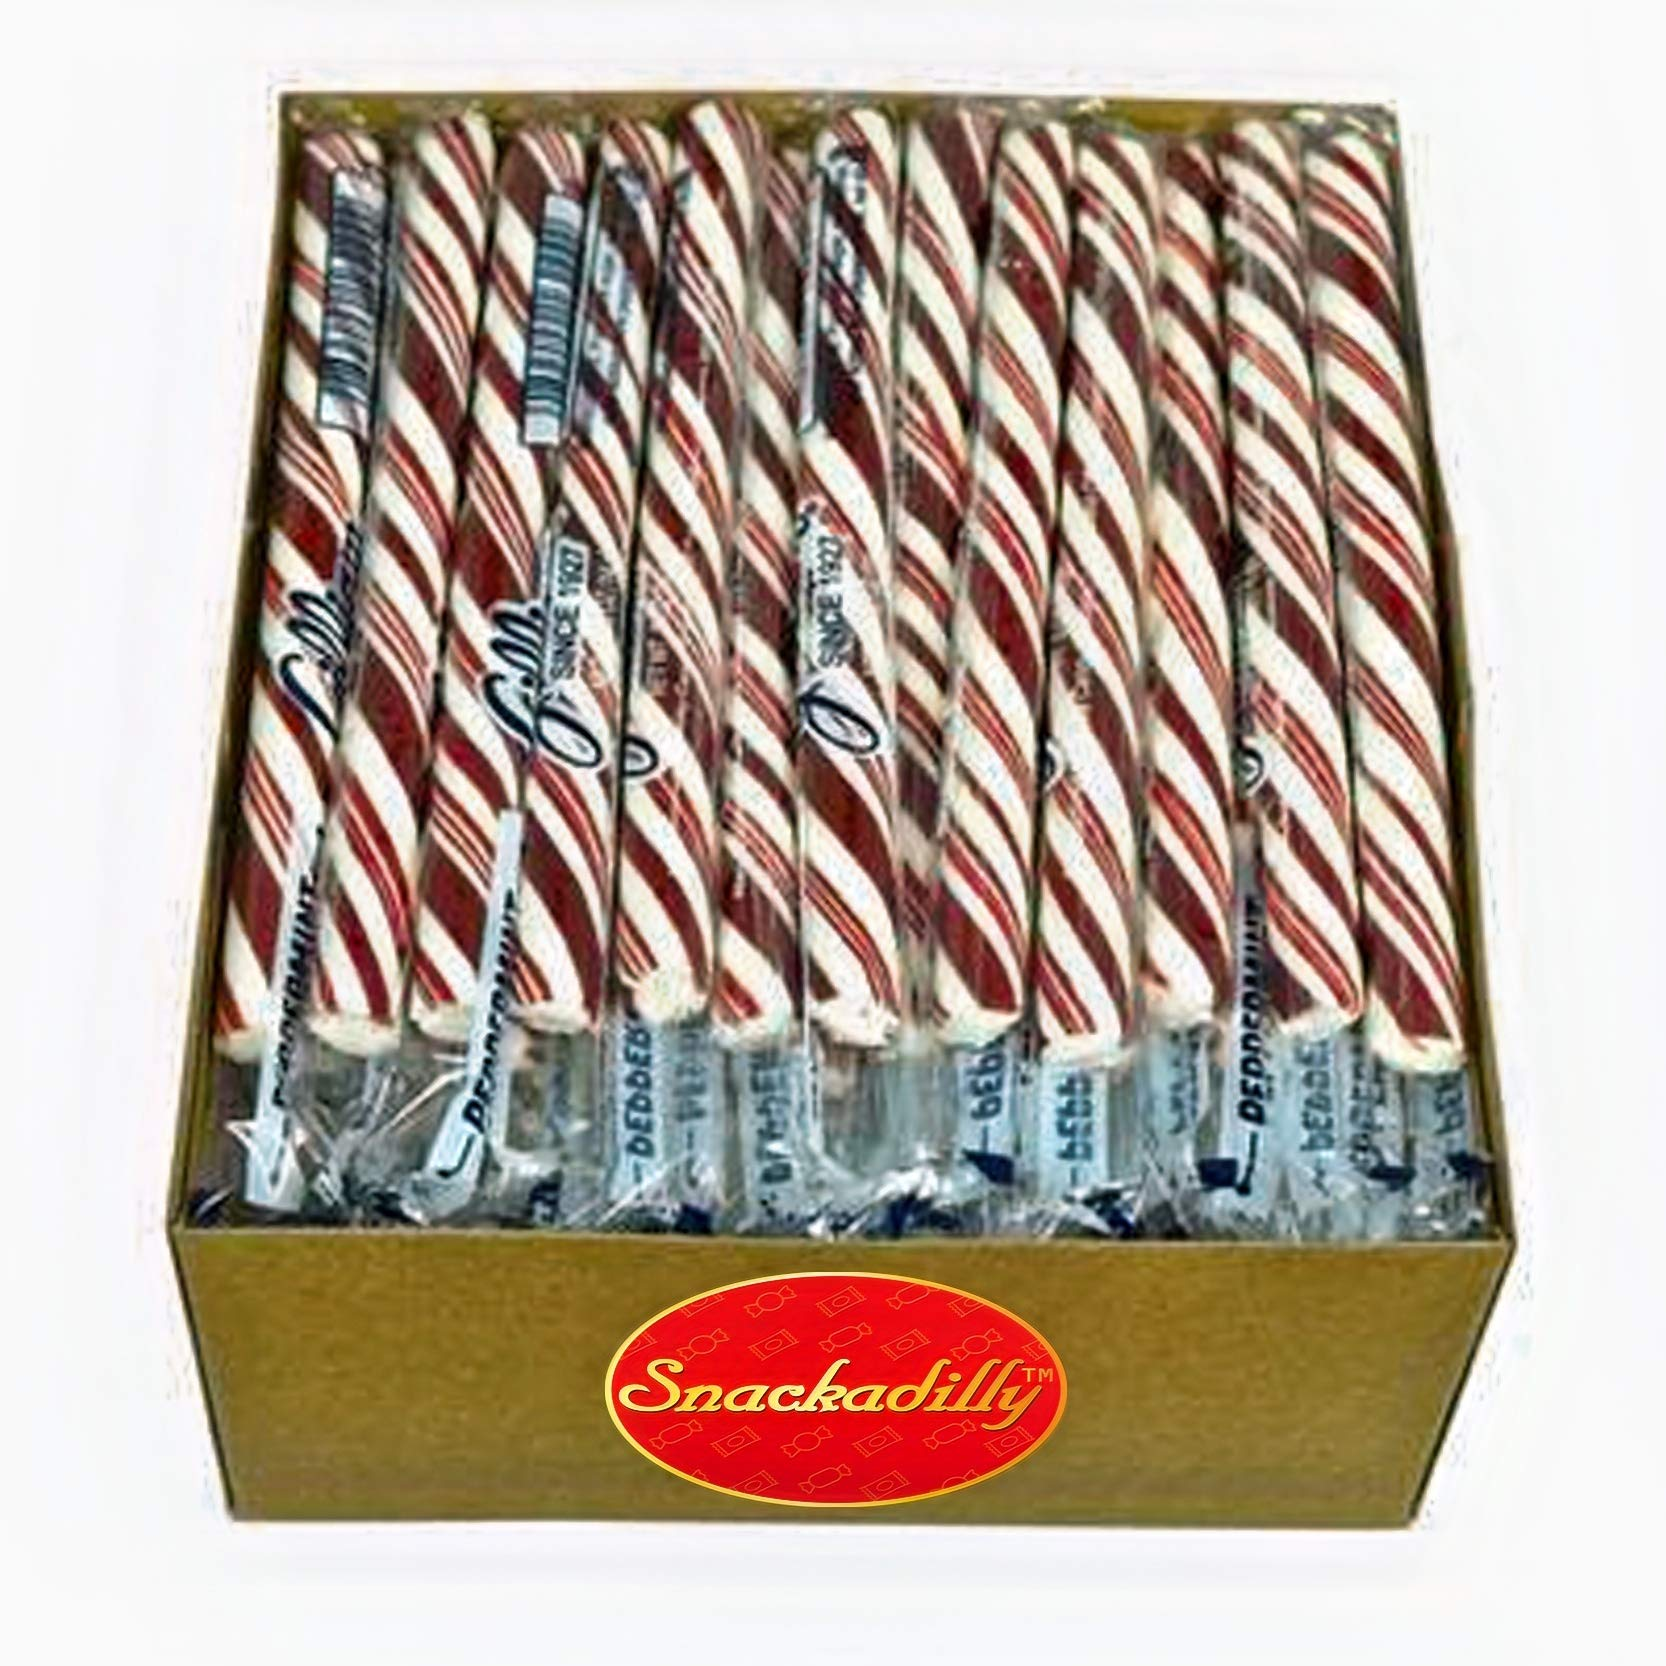 Peppermint Candy Sticks - Box Of 80 Candy Sticks Individually Wrapped - Carefully Packaged By Snackadilly